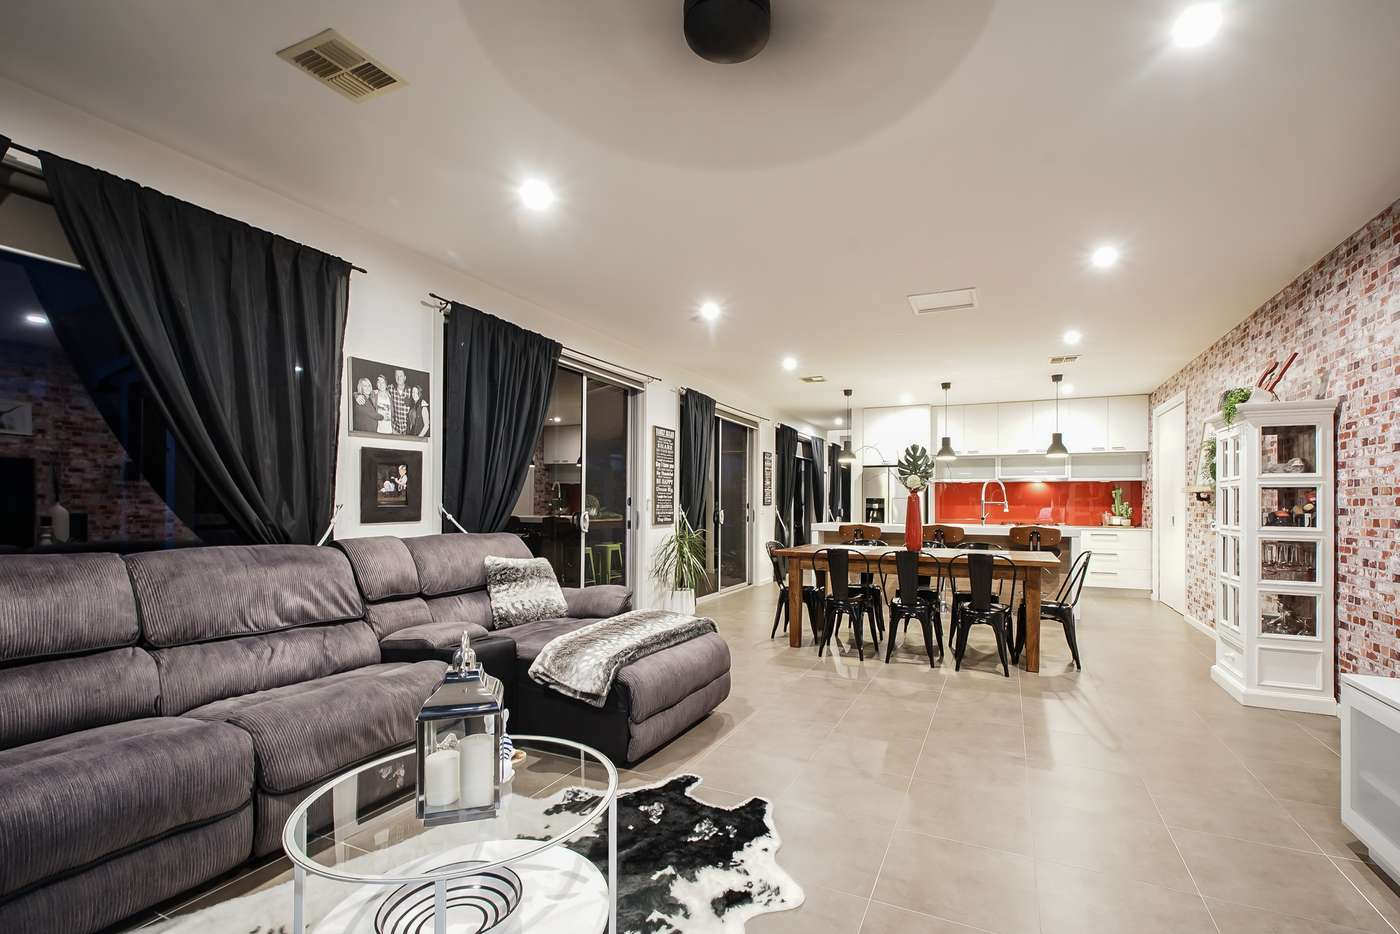 Sixth view of Homely house listing, 21 Espie Court, Botanic Ridge VIC 3977